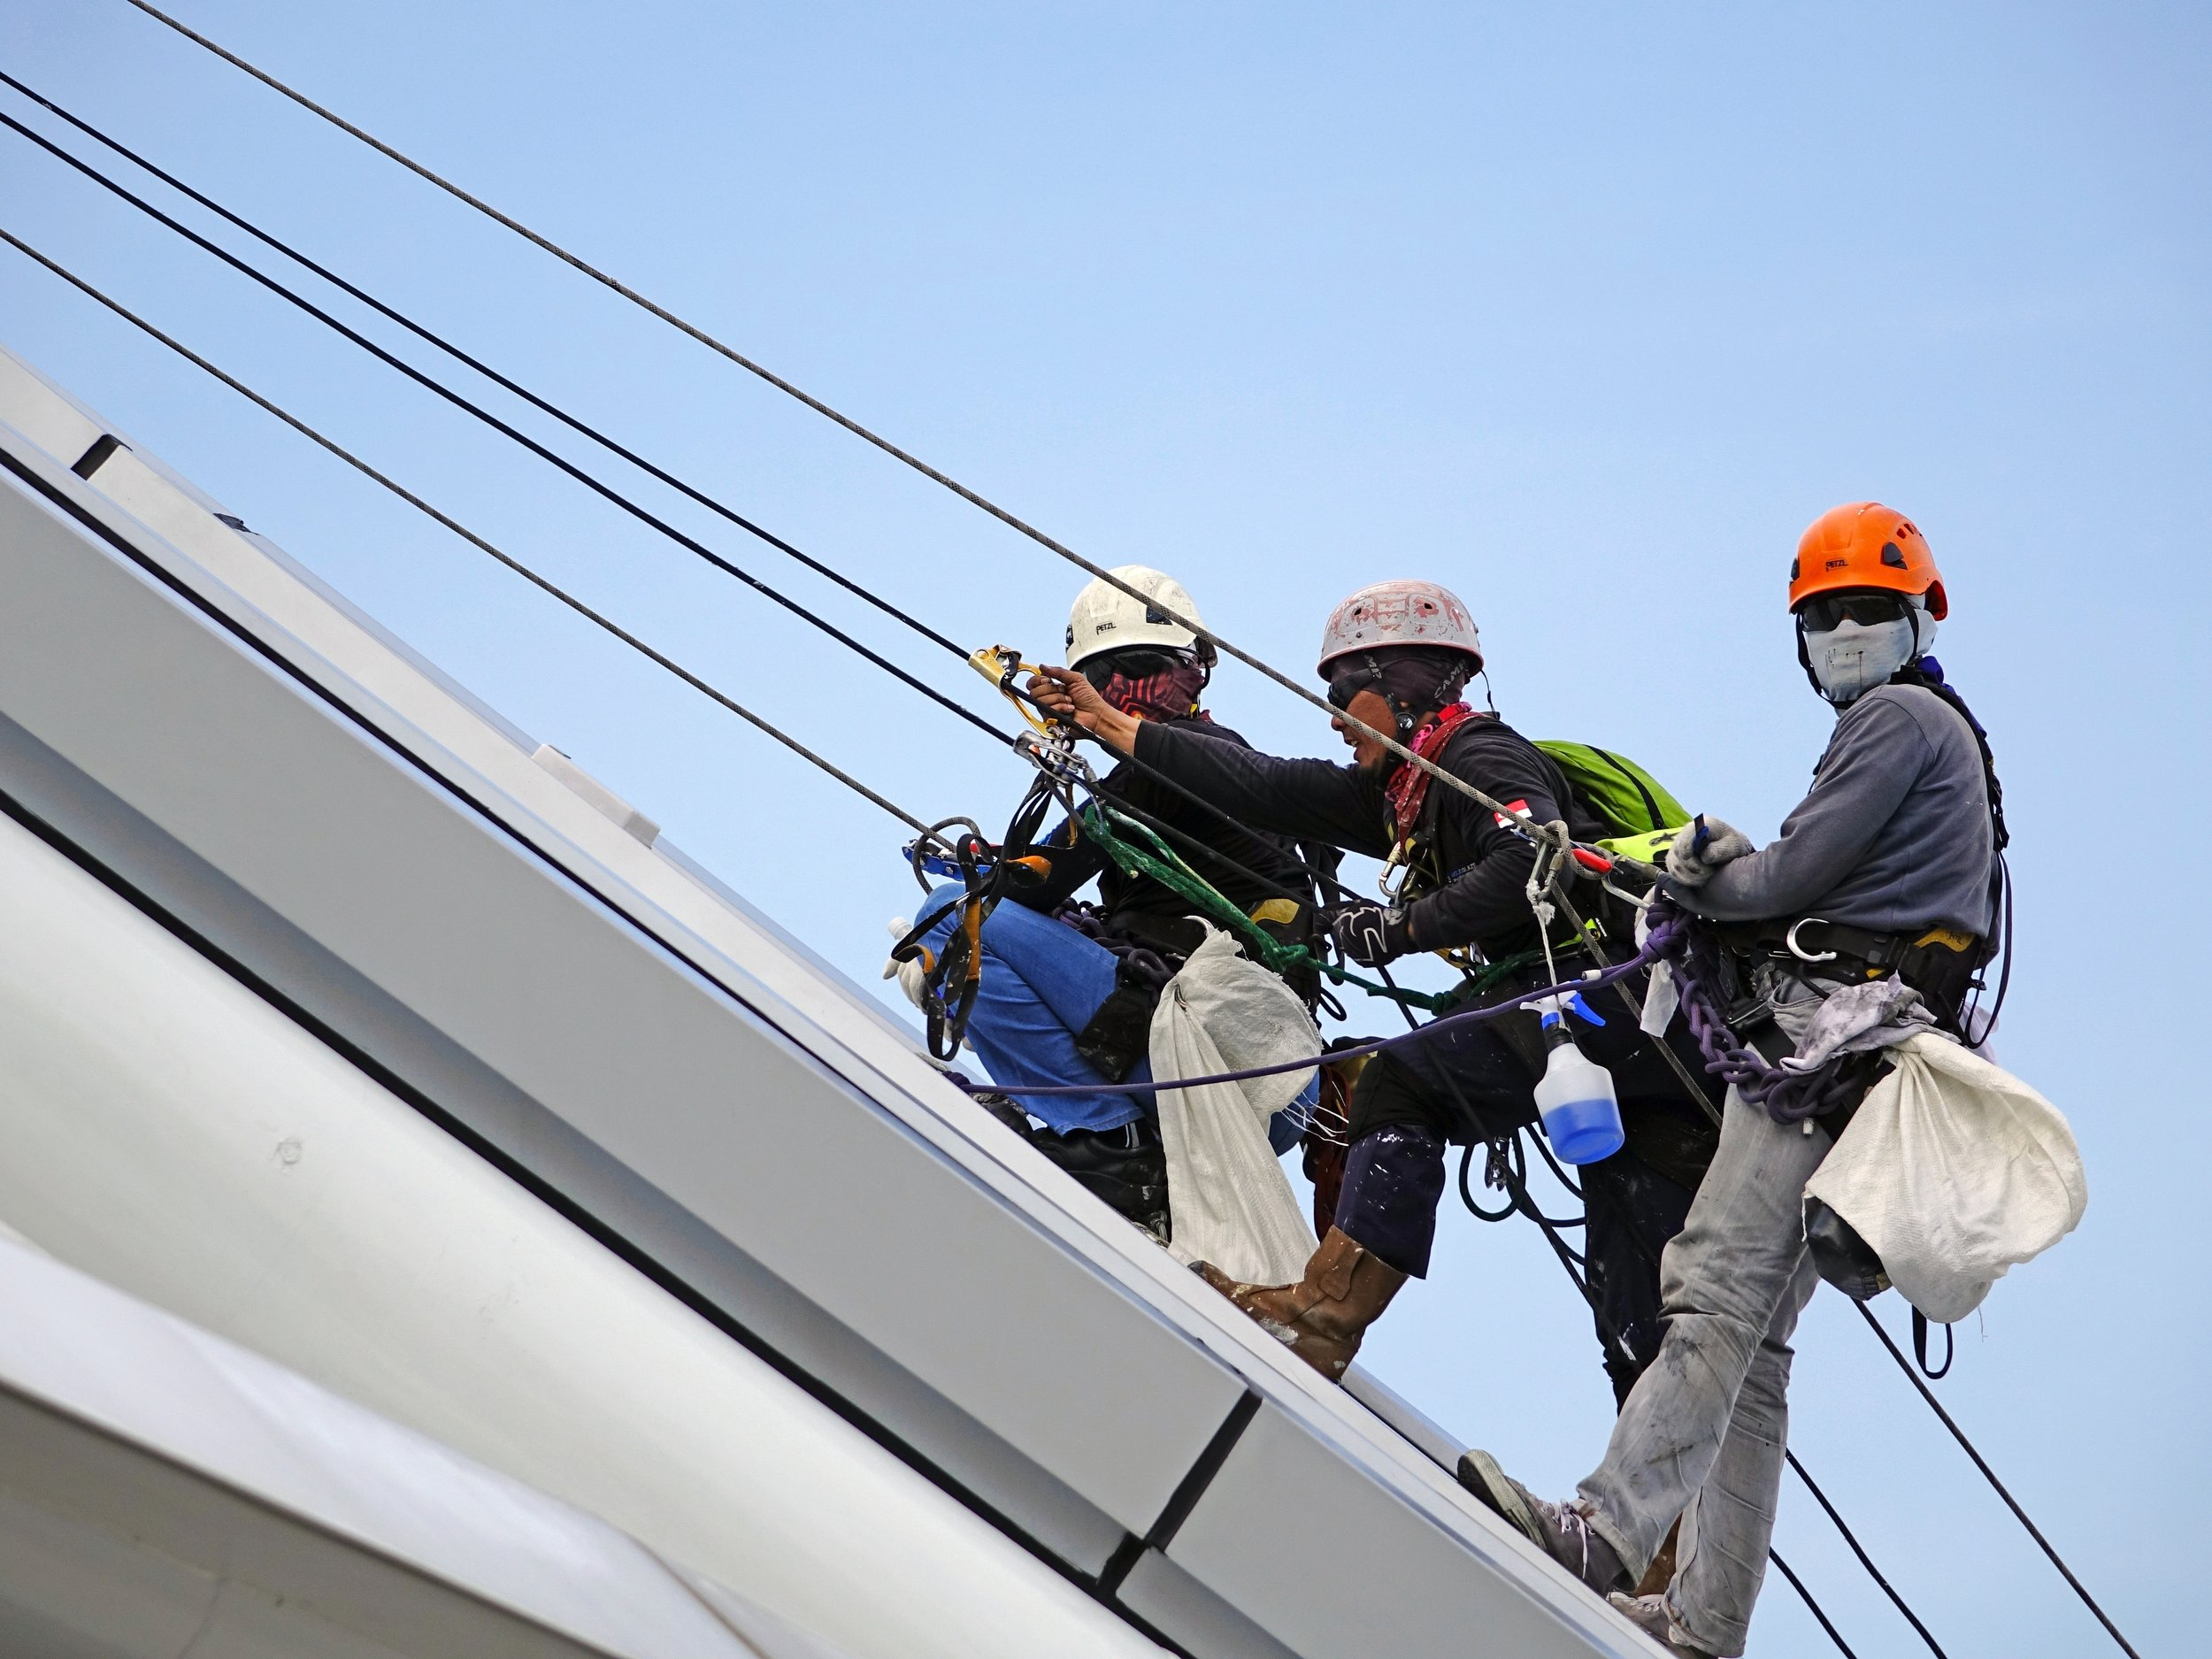 rappelling-rope-safety-security.jpg